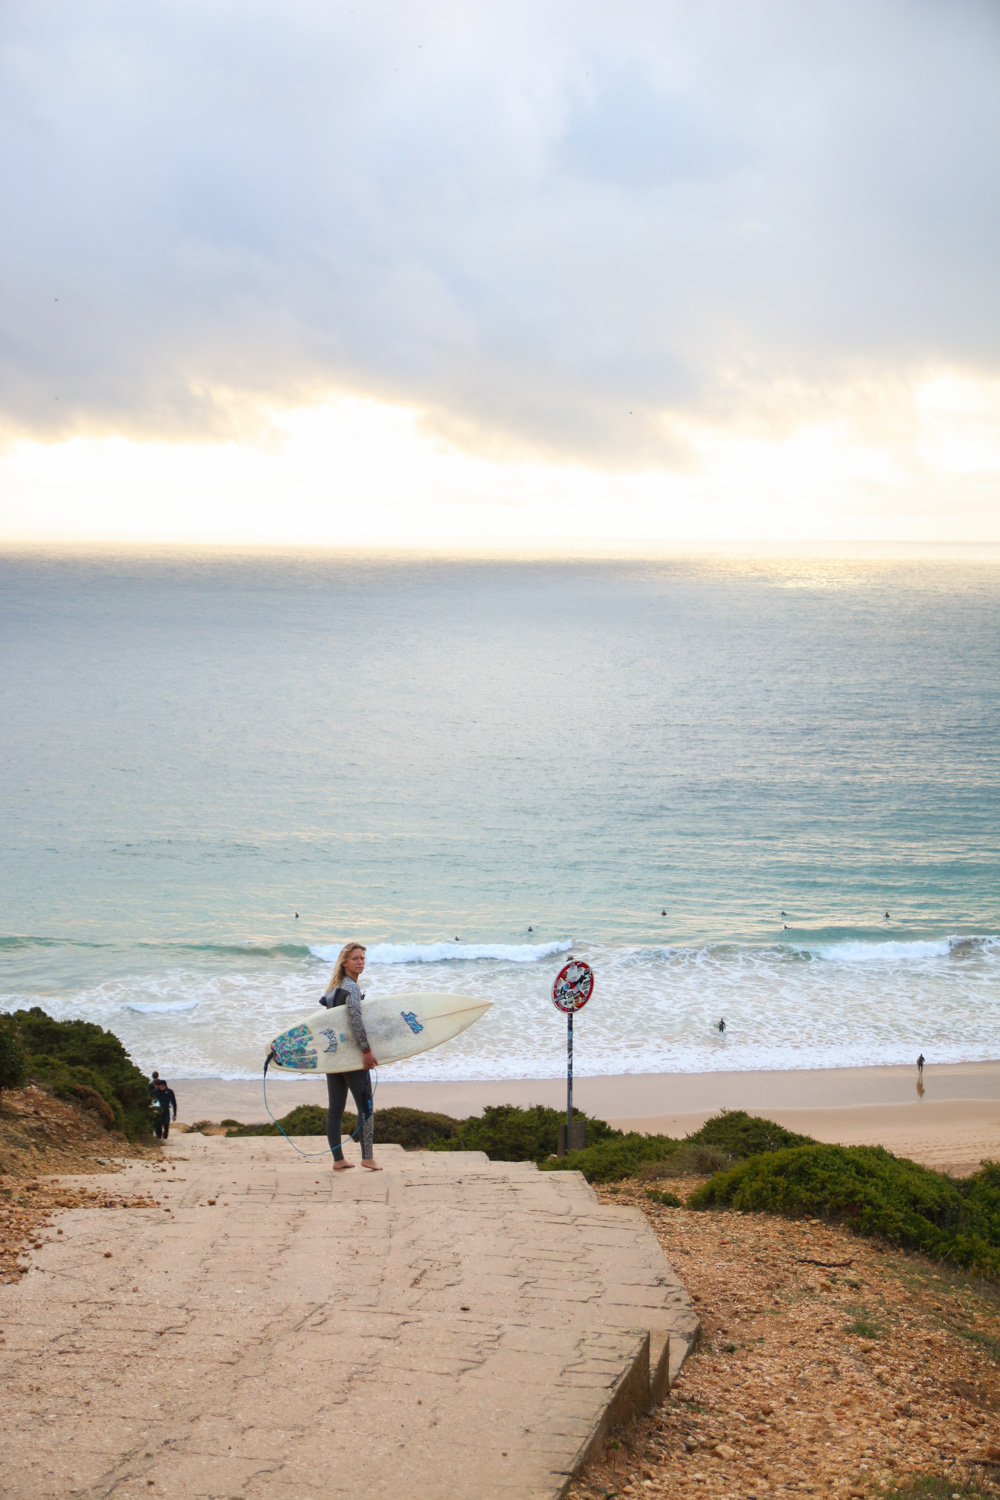 Surfers at Cabo St Vincent, The Algarve